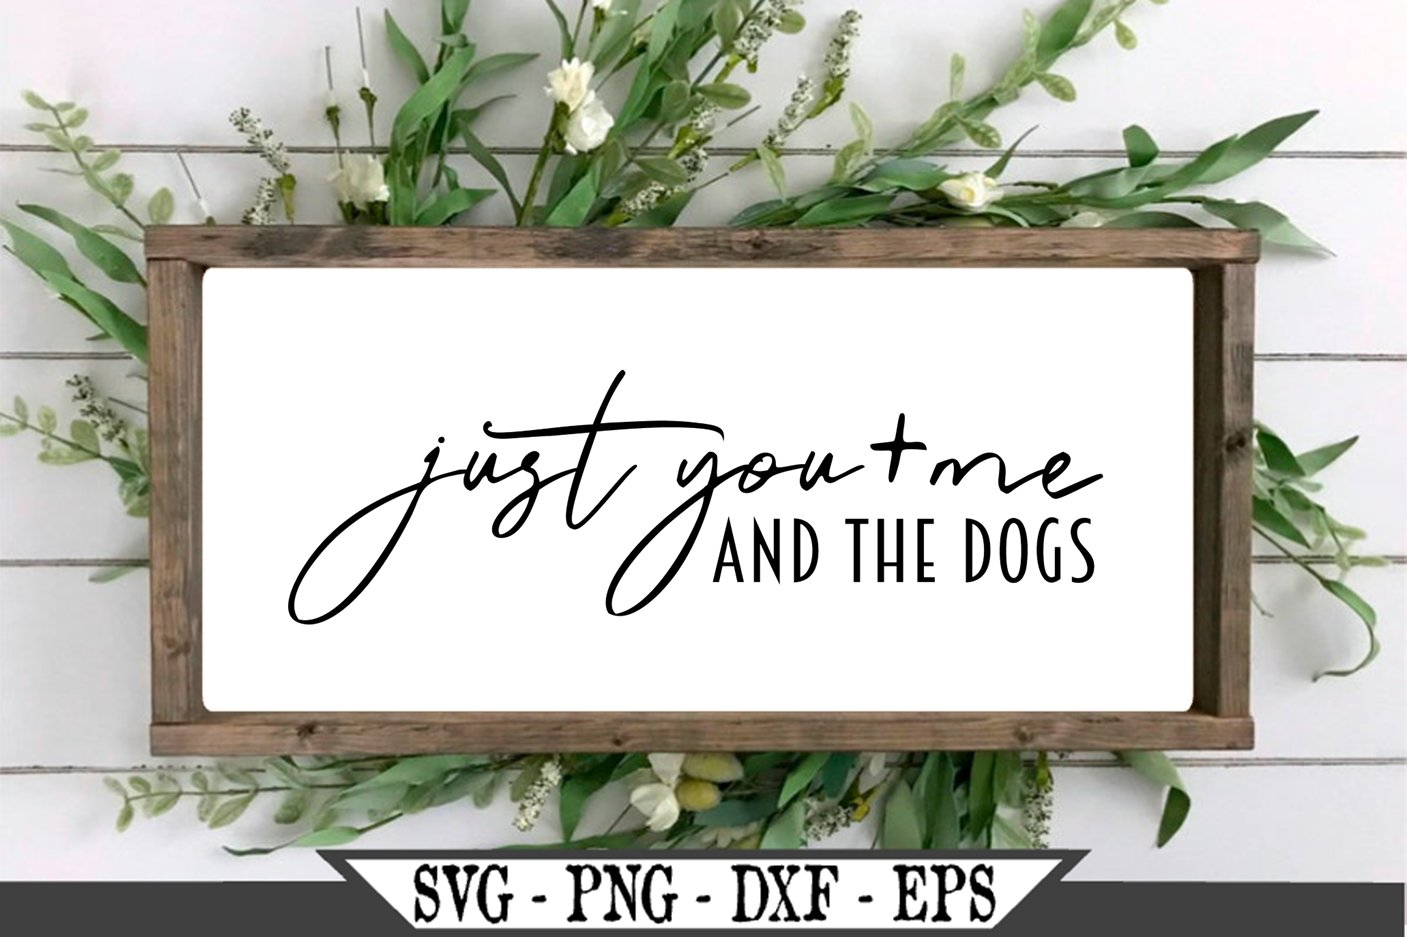 Just You And Me And The Dogs SVG example image 1